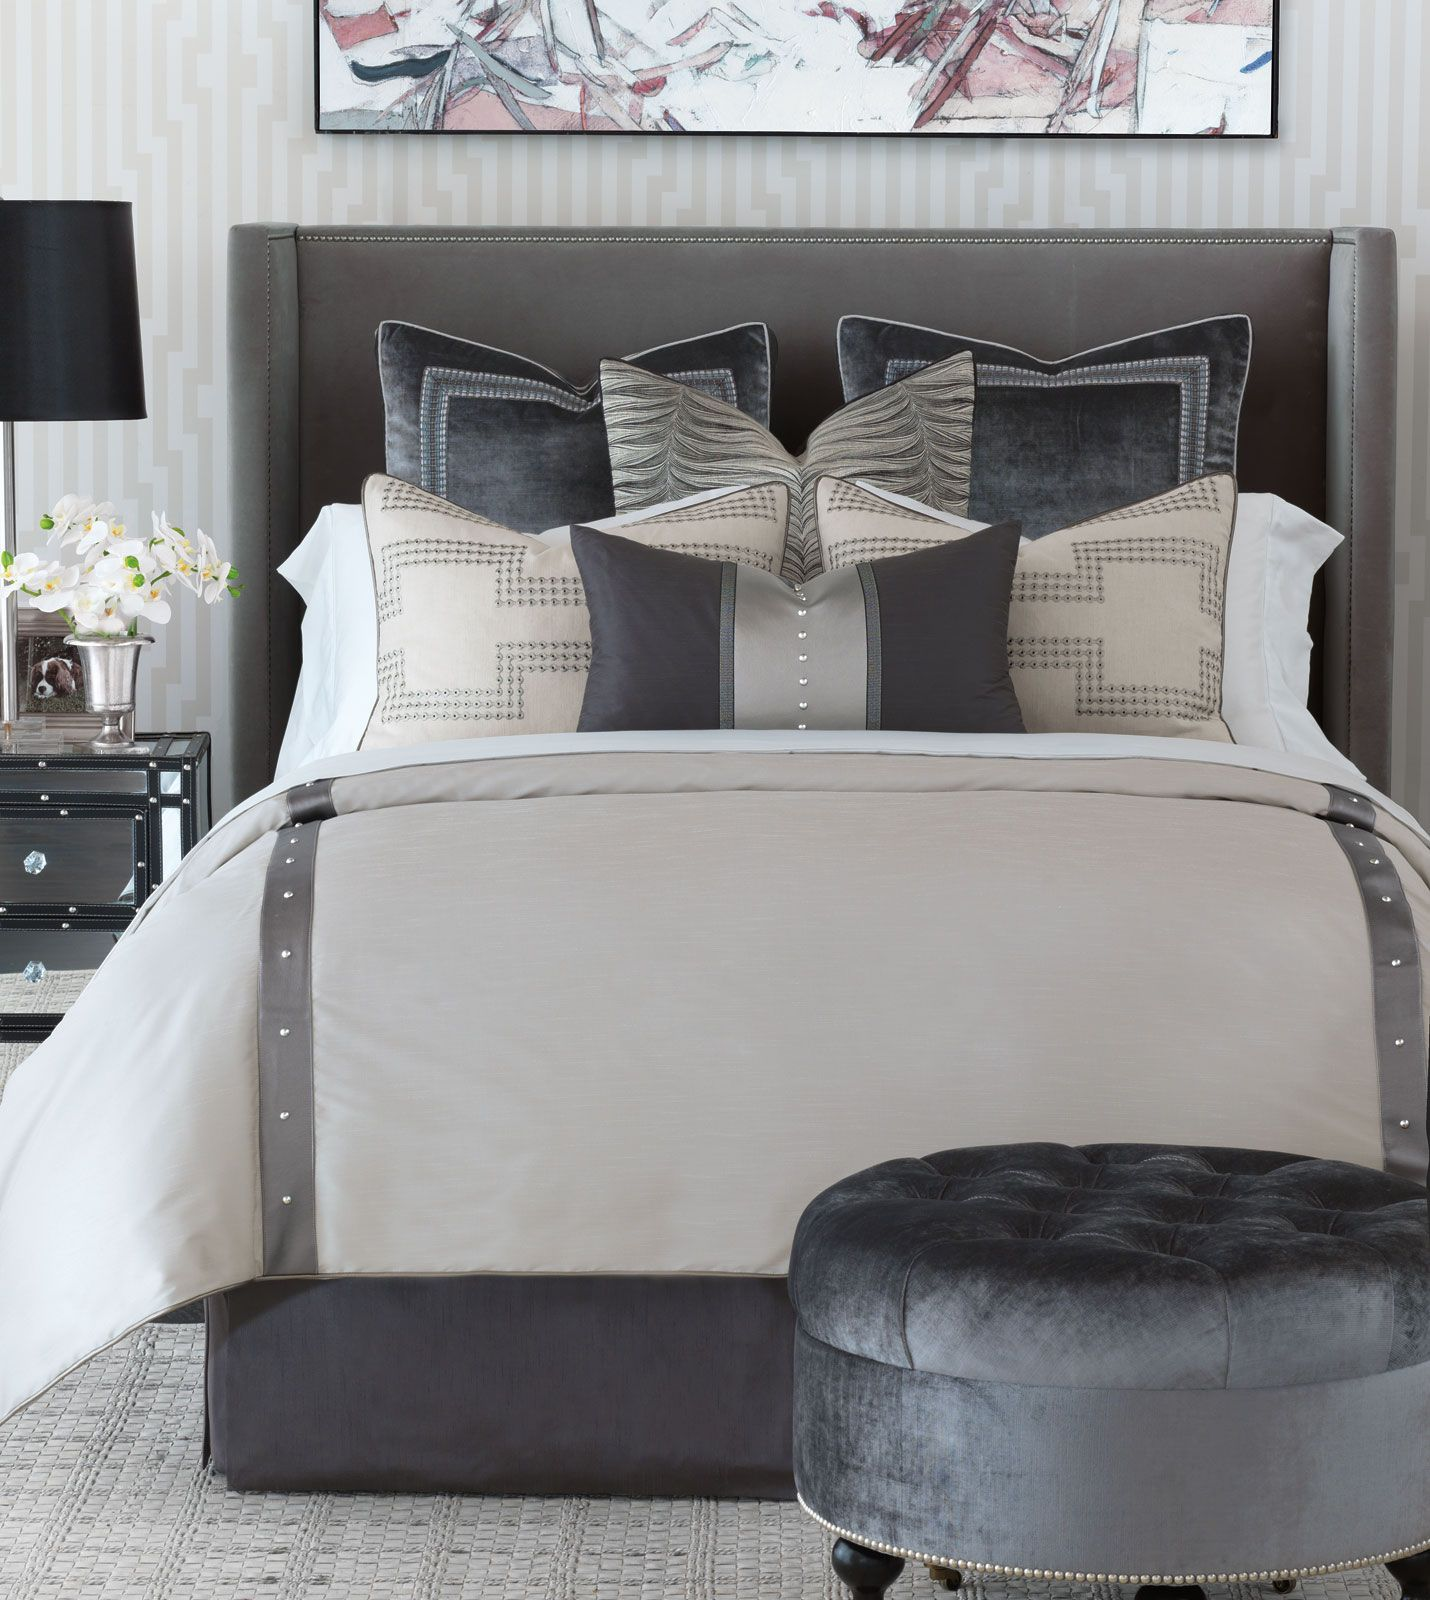 luxury bedding by eastern accents  hendrix collection  bedding  - luxury bedding by eastern accents  hendrix collection